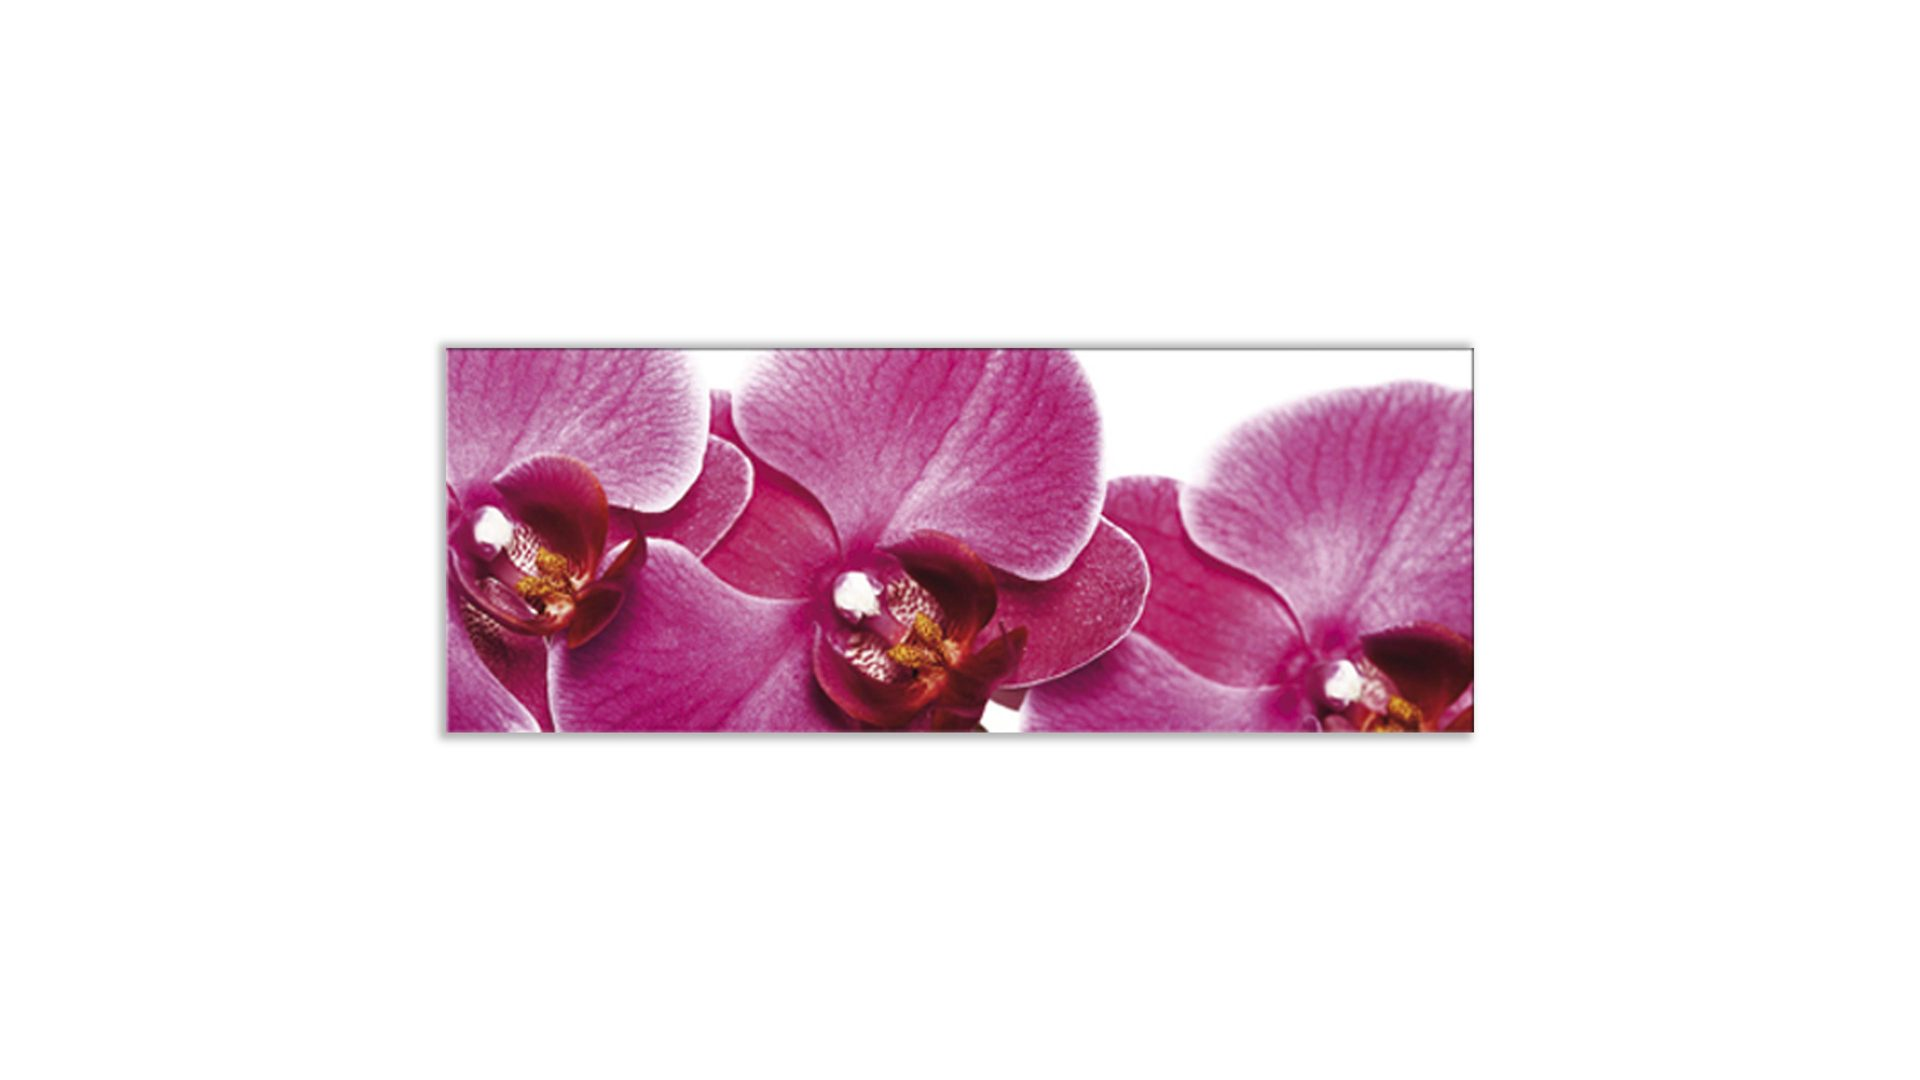 Glasbild Ars graphica aus Glas in Pink Glasbild Pink Orchidee 4 mm Floatglas mit Motiv, ca. 80 x 30 cm